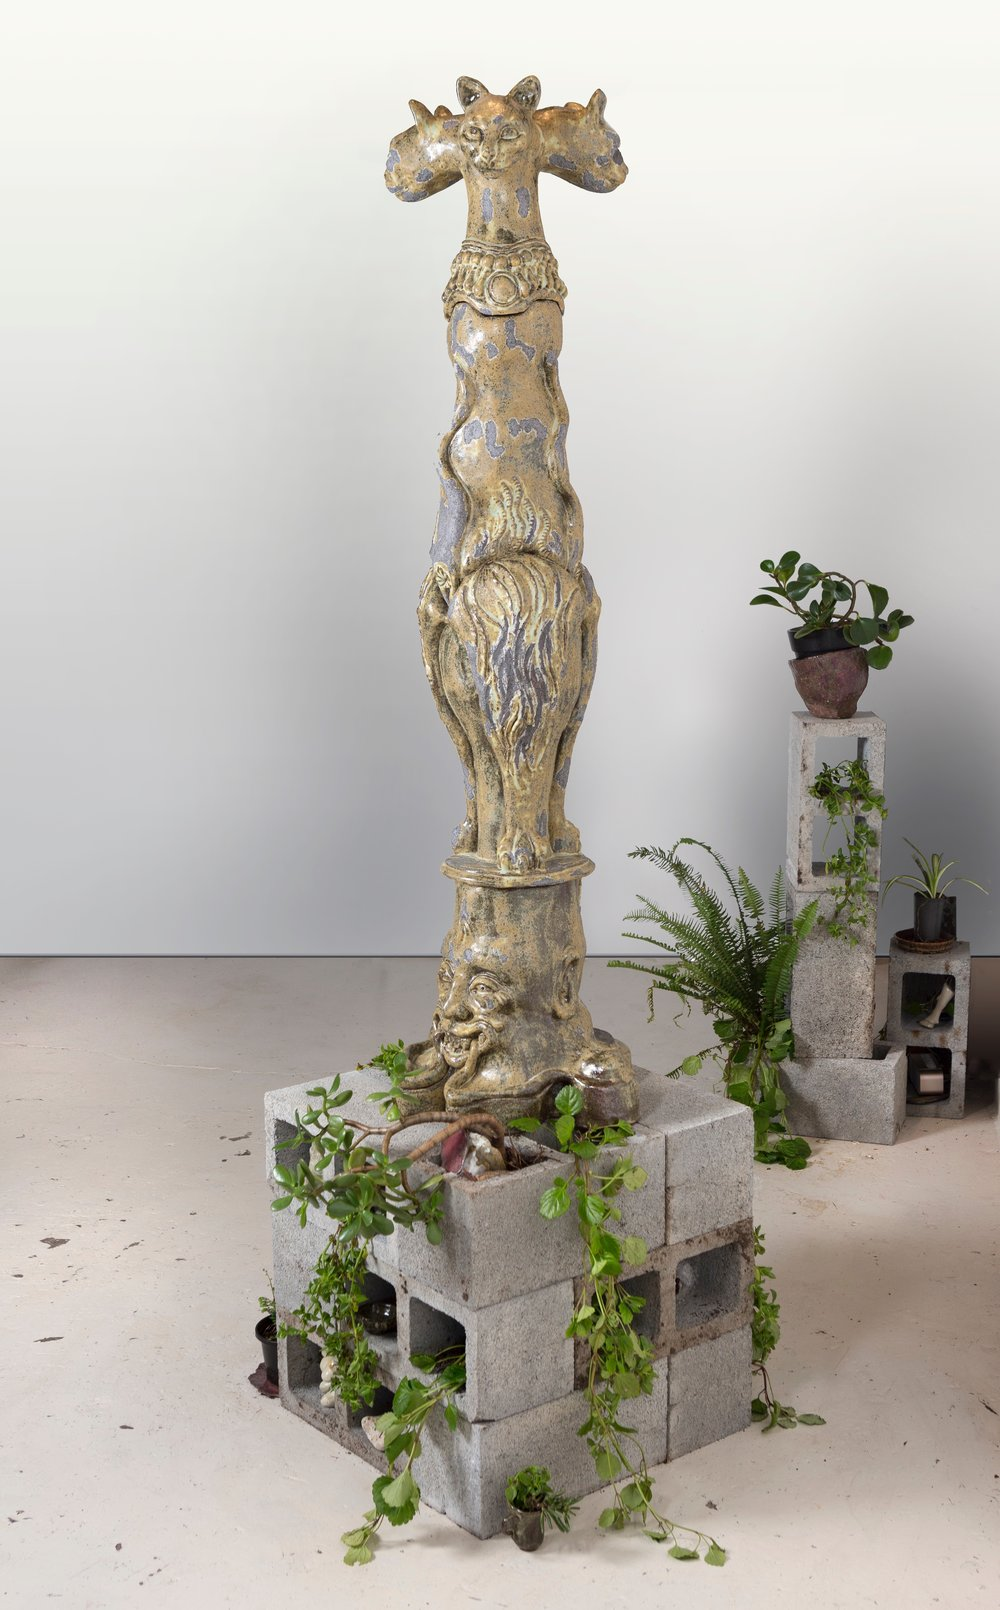 Mystic Kitten 2015, hand built ceramic, stoneware glaze, bessa blocks, plants, small sculptures, pots, cups, all hand made ceramic, sound embedded into sculpture by Adam Cox